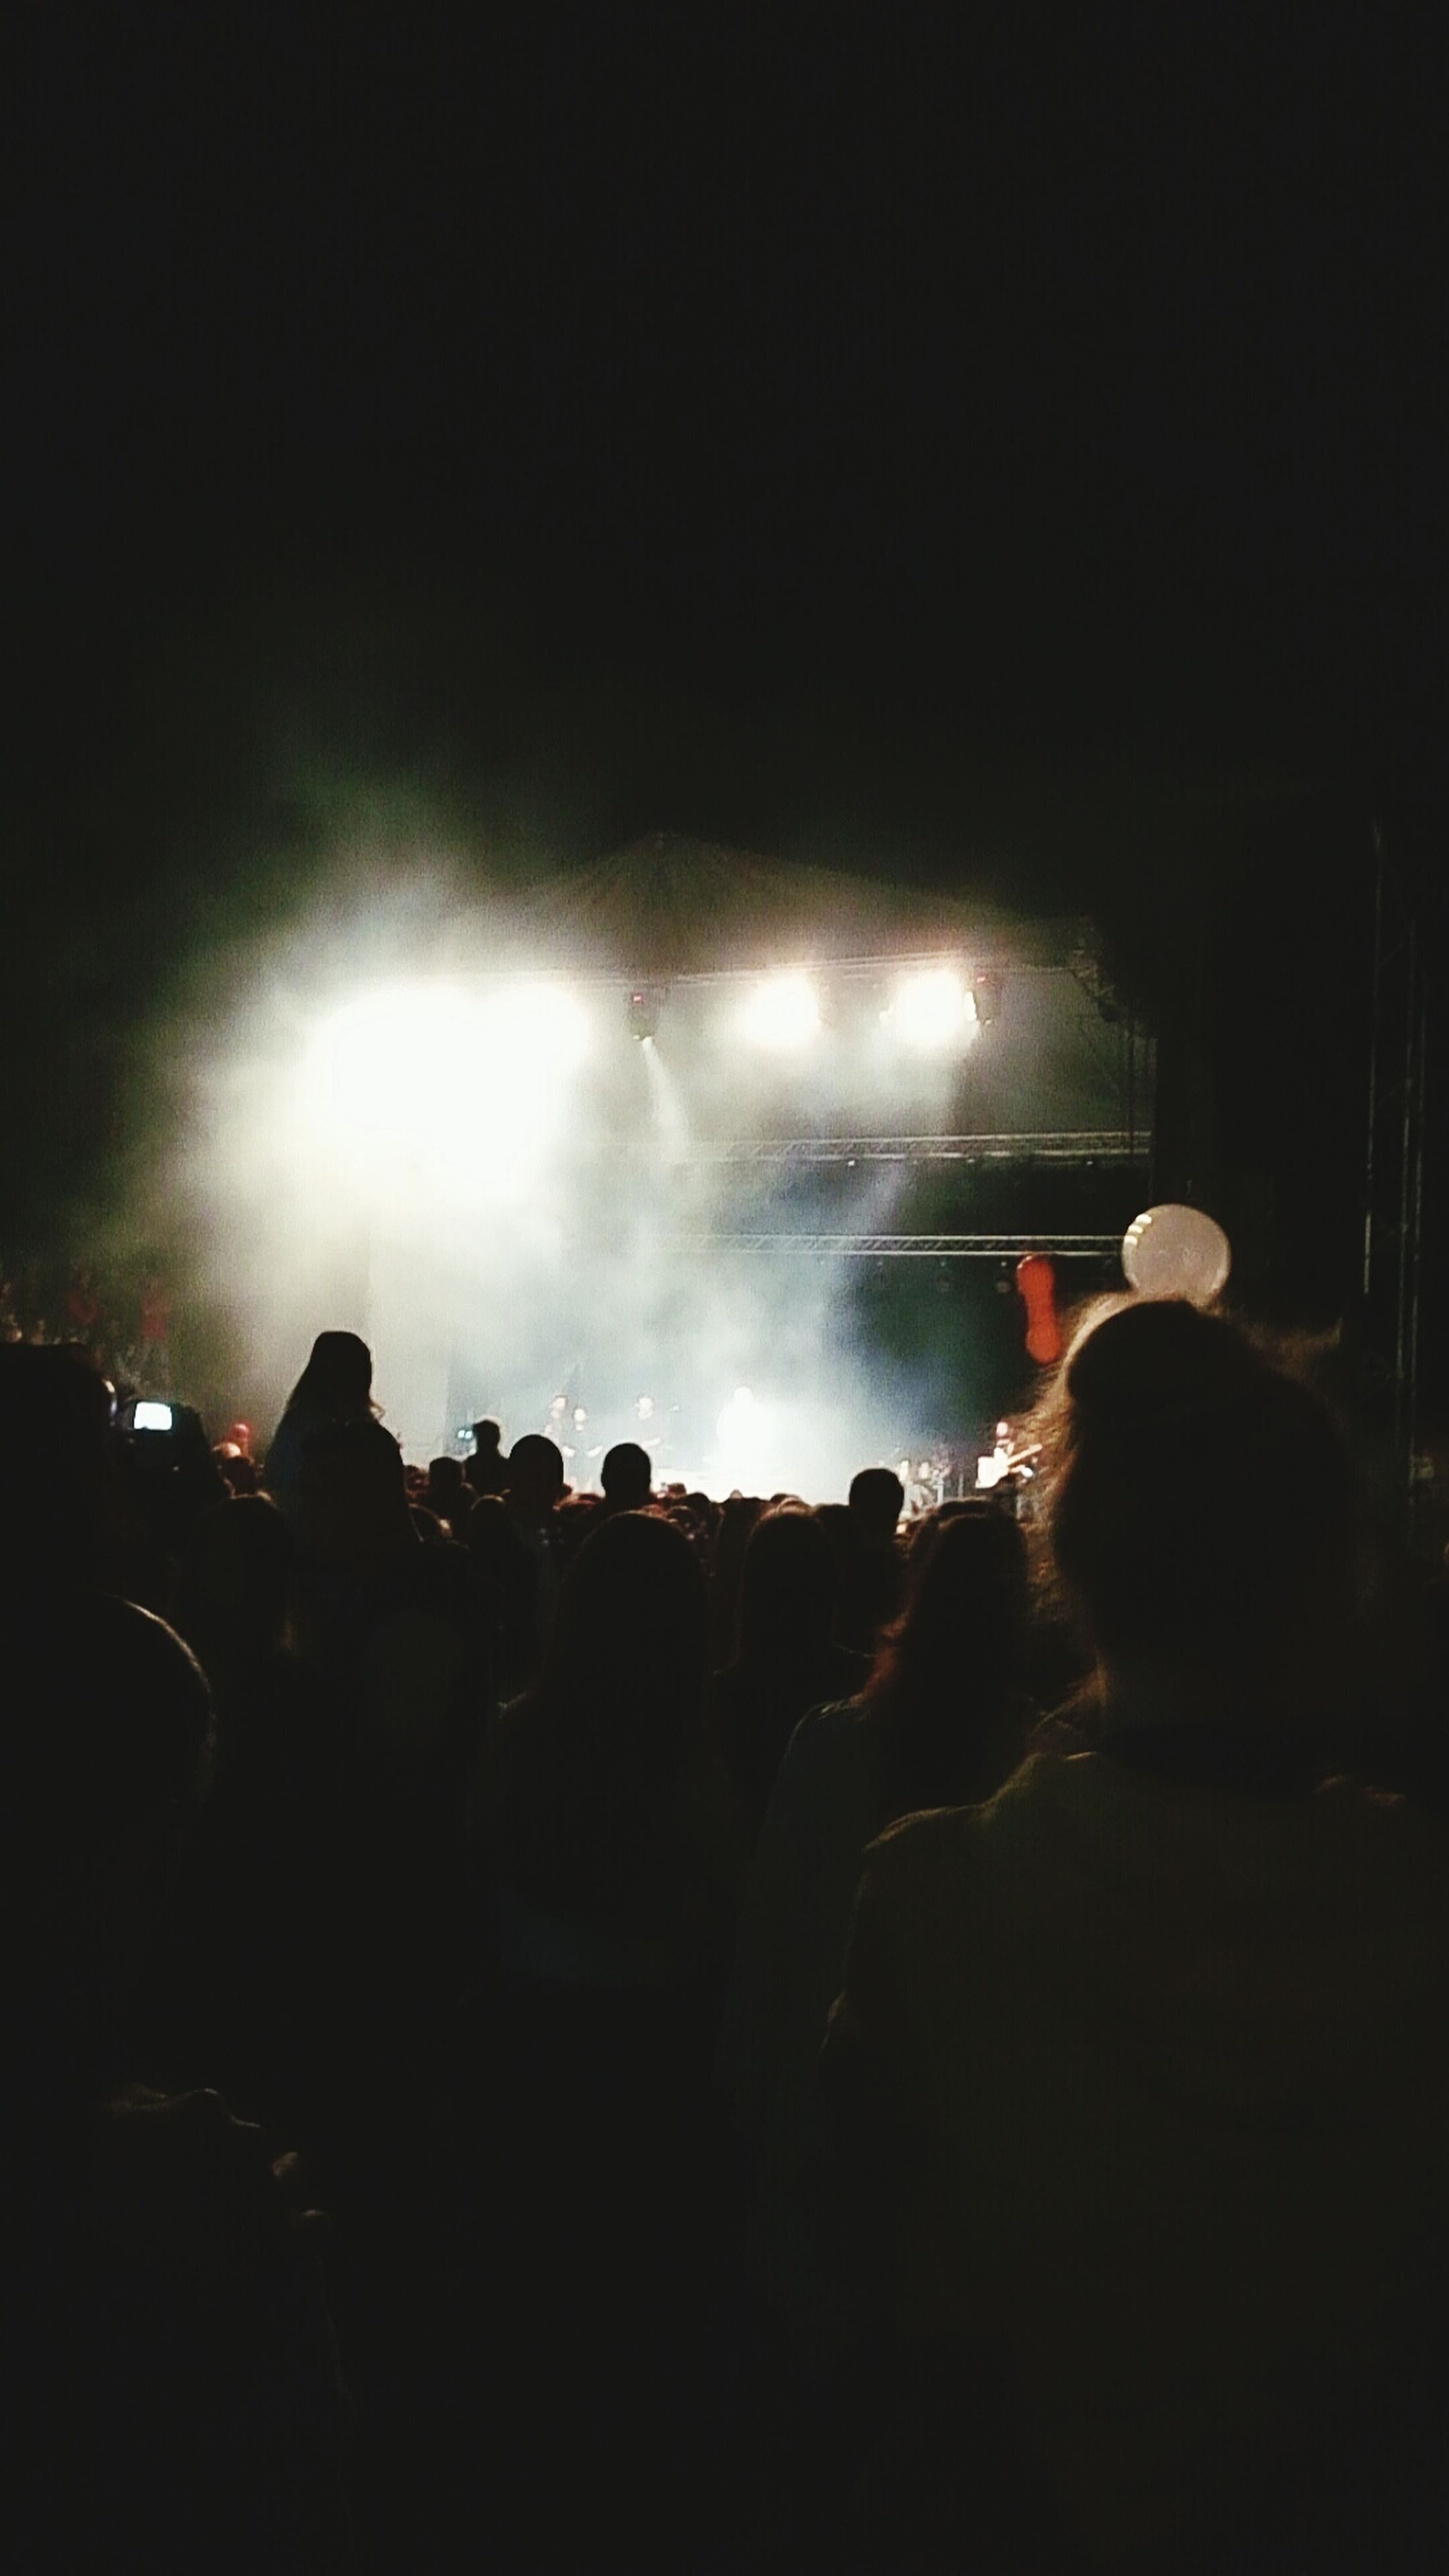 arts culture and entertainment, large group of people, illuminated, night, rear view, crowd, event, men, person, nightlife, enjoyment, performance, stage - performance space, popular music concert, dark, fun, atmosphere, concert, spectator, music festival, atmospheric mood, sky